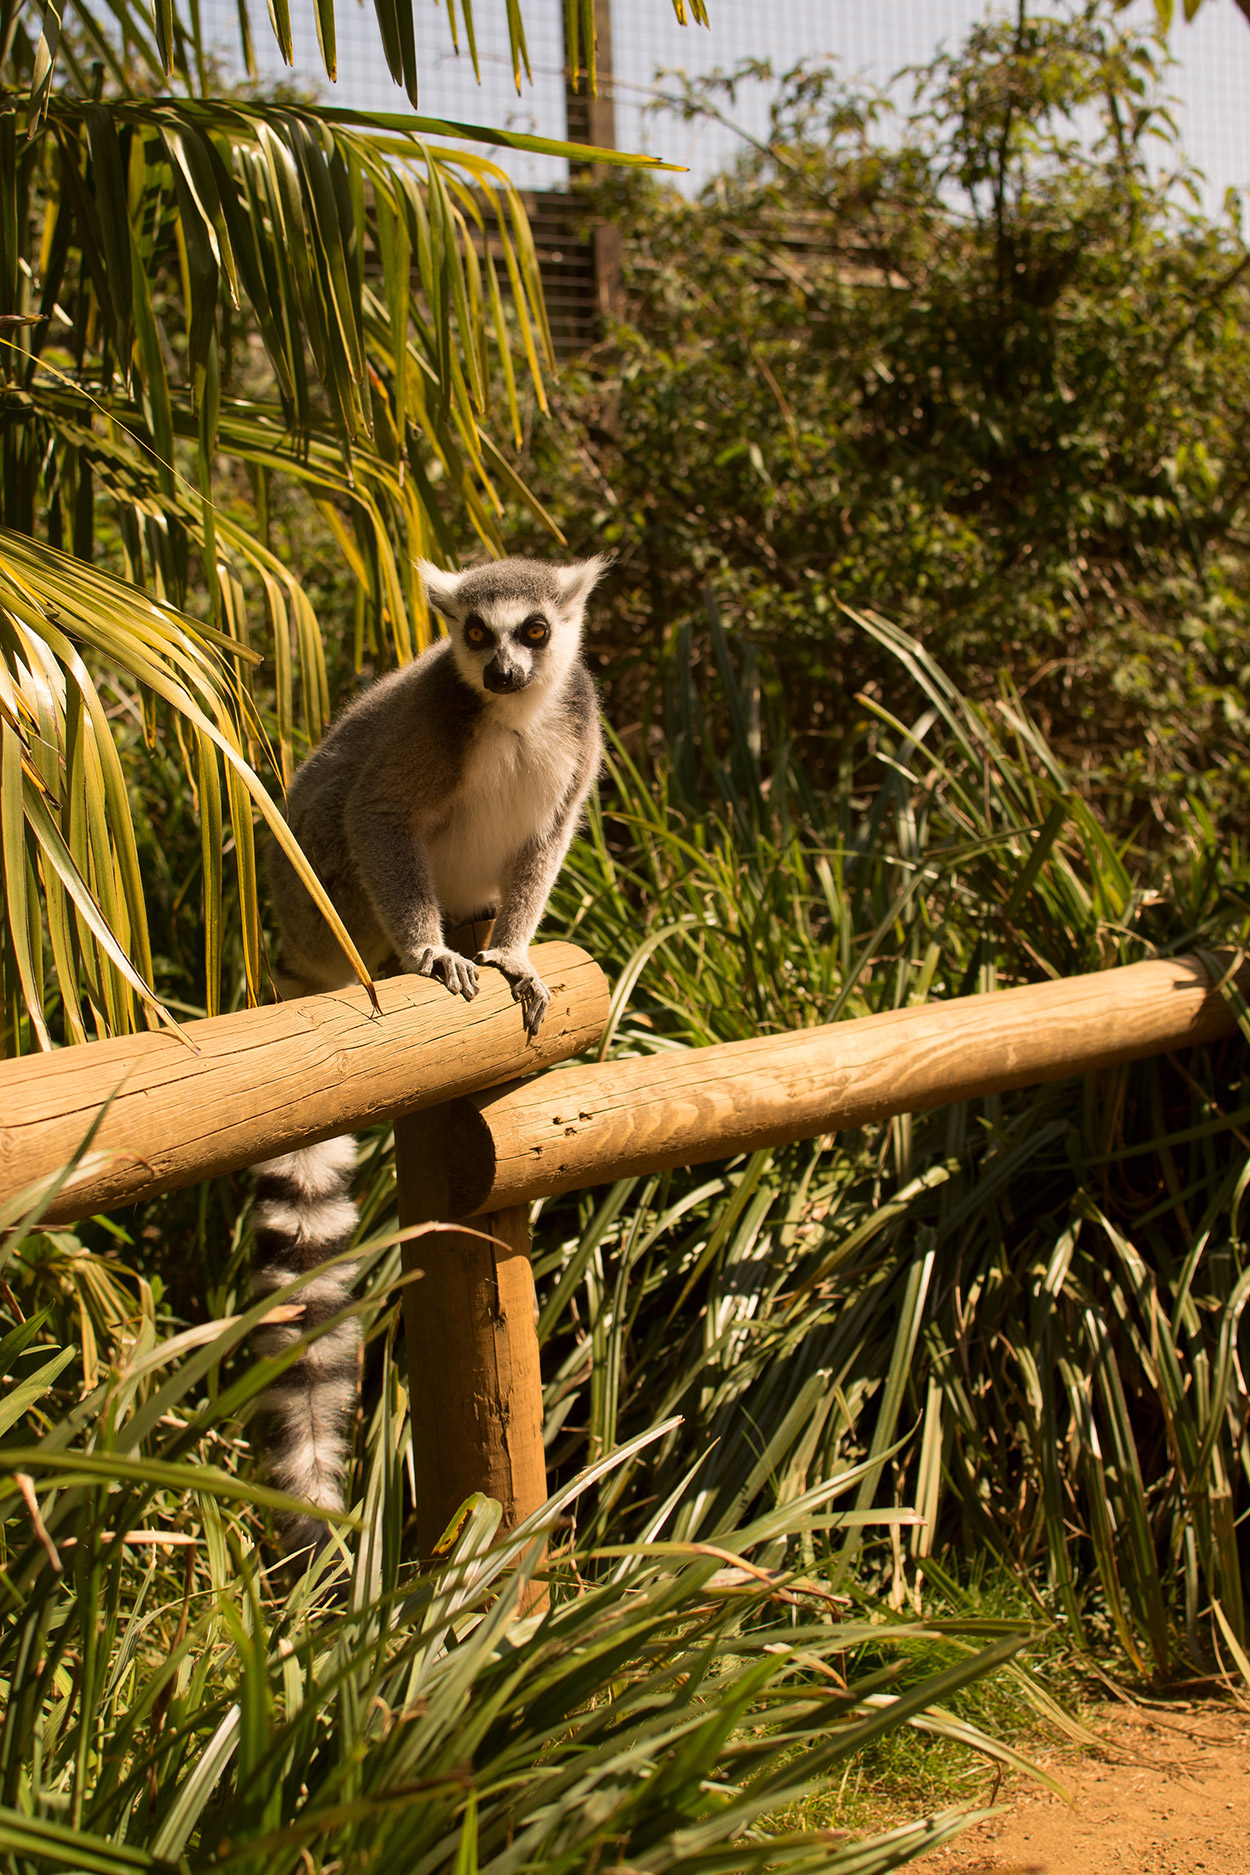 Lemurs at Cotswold Wildlife Park